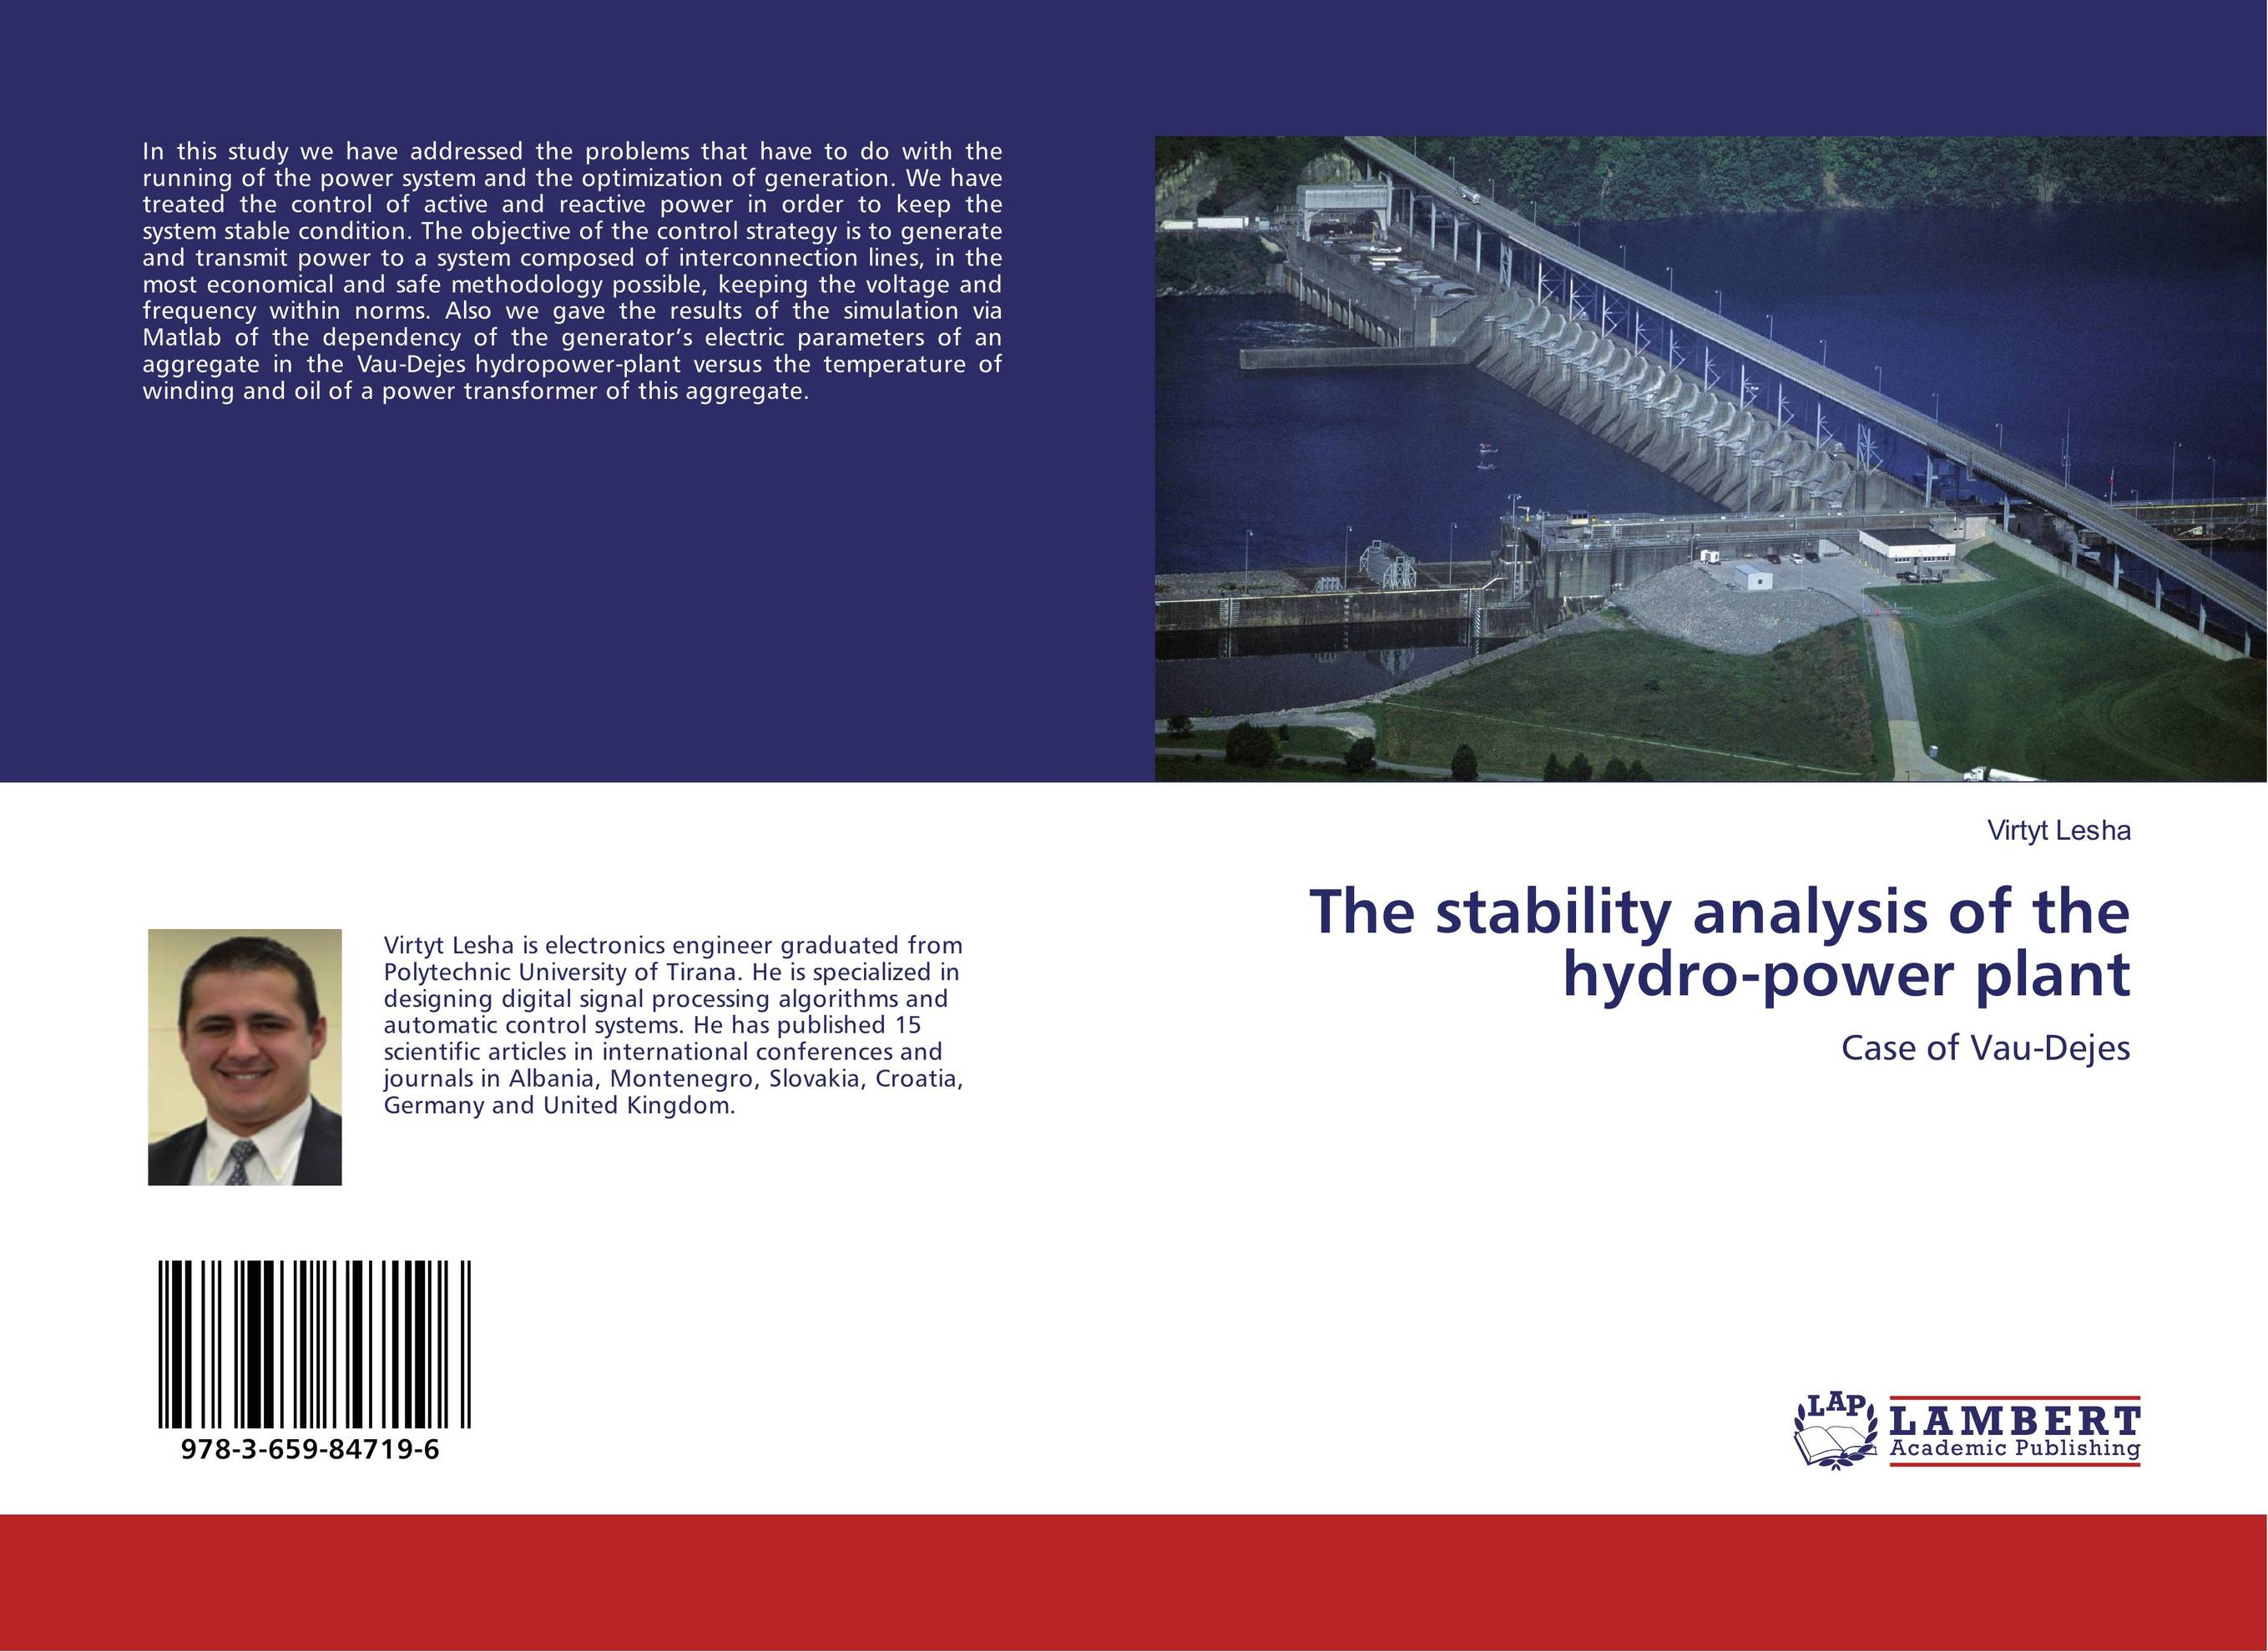 The stability analysis of the hydro-power plant stem bromelain in silico analysis for stability and modification